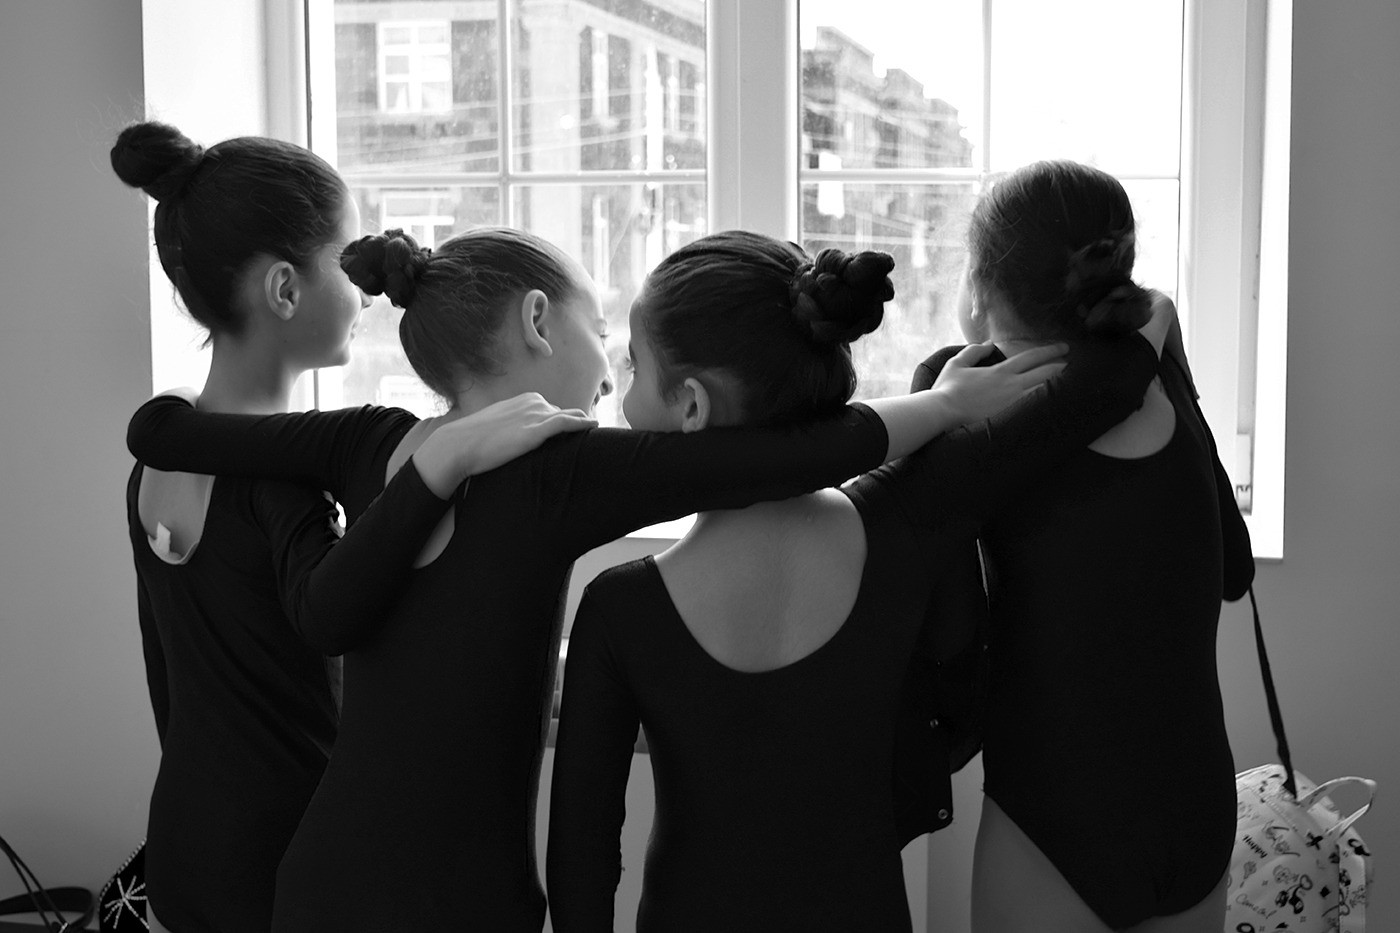 DSC 2044 - Photostory from Gyumri's Ballet School